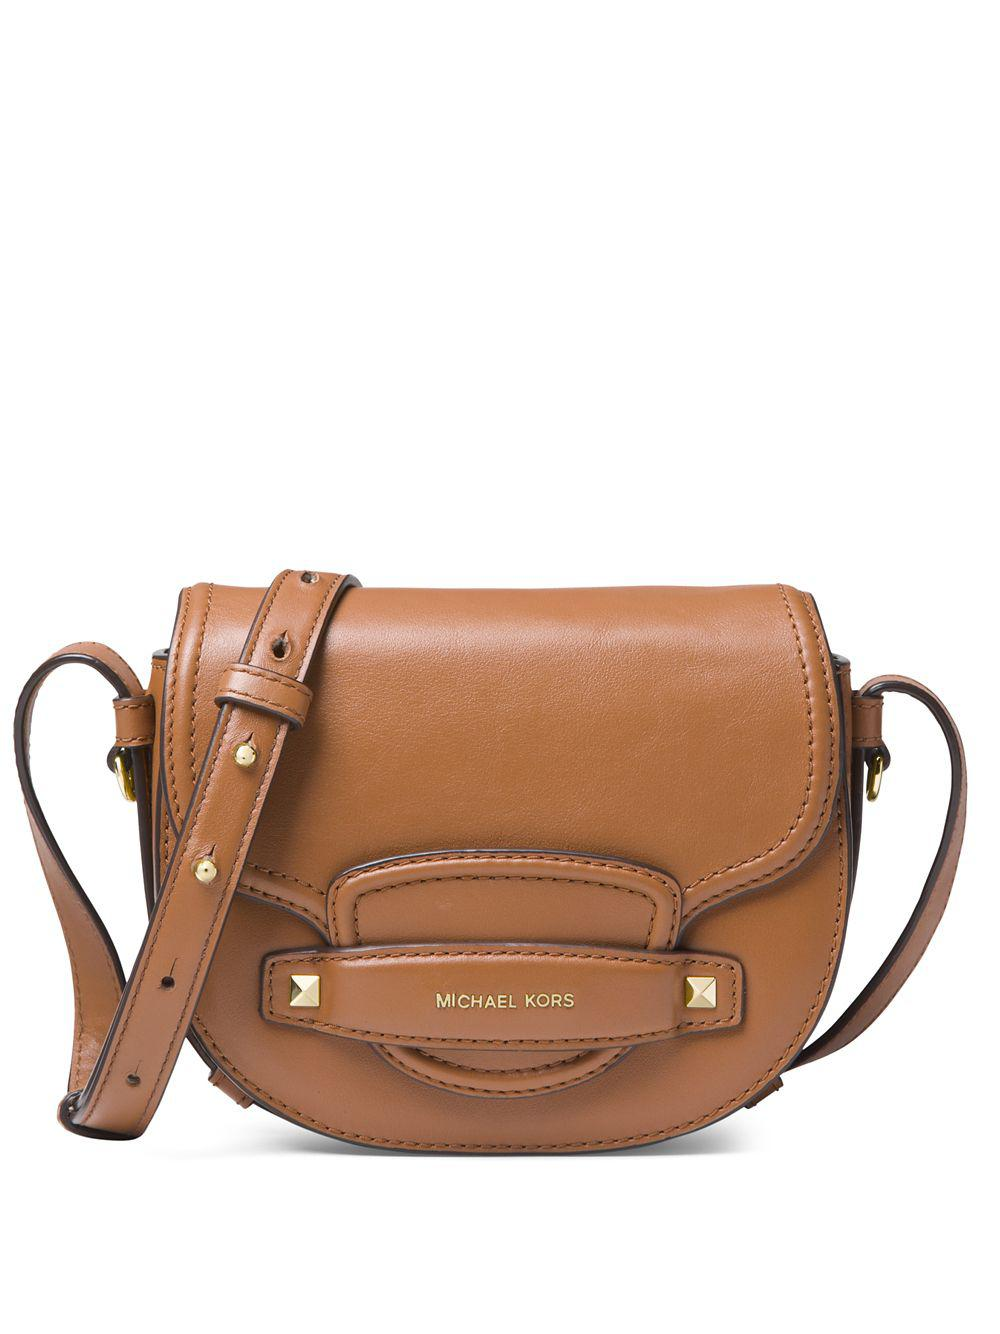 1c7a2ca4d755 Michael Michael Kors Cary Saddle Crossbody Bag in Brown - Lyst